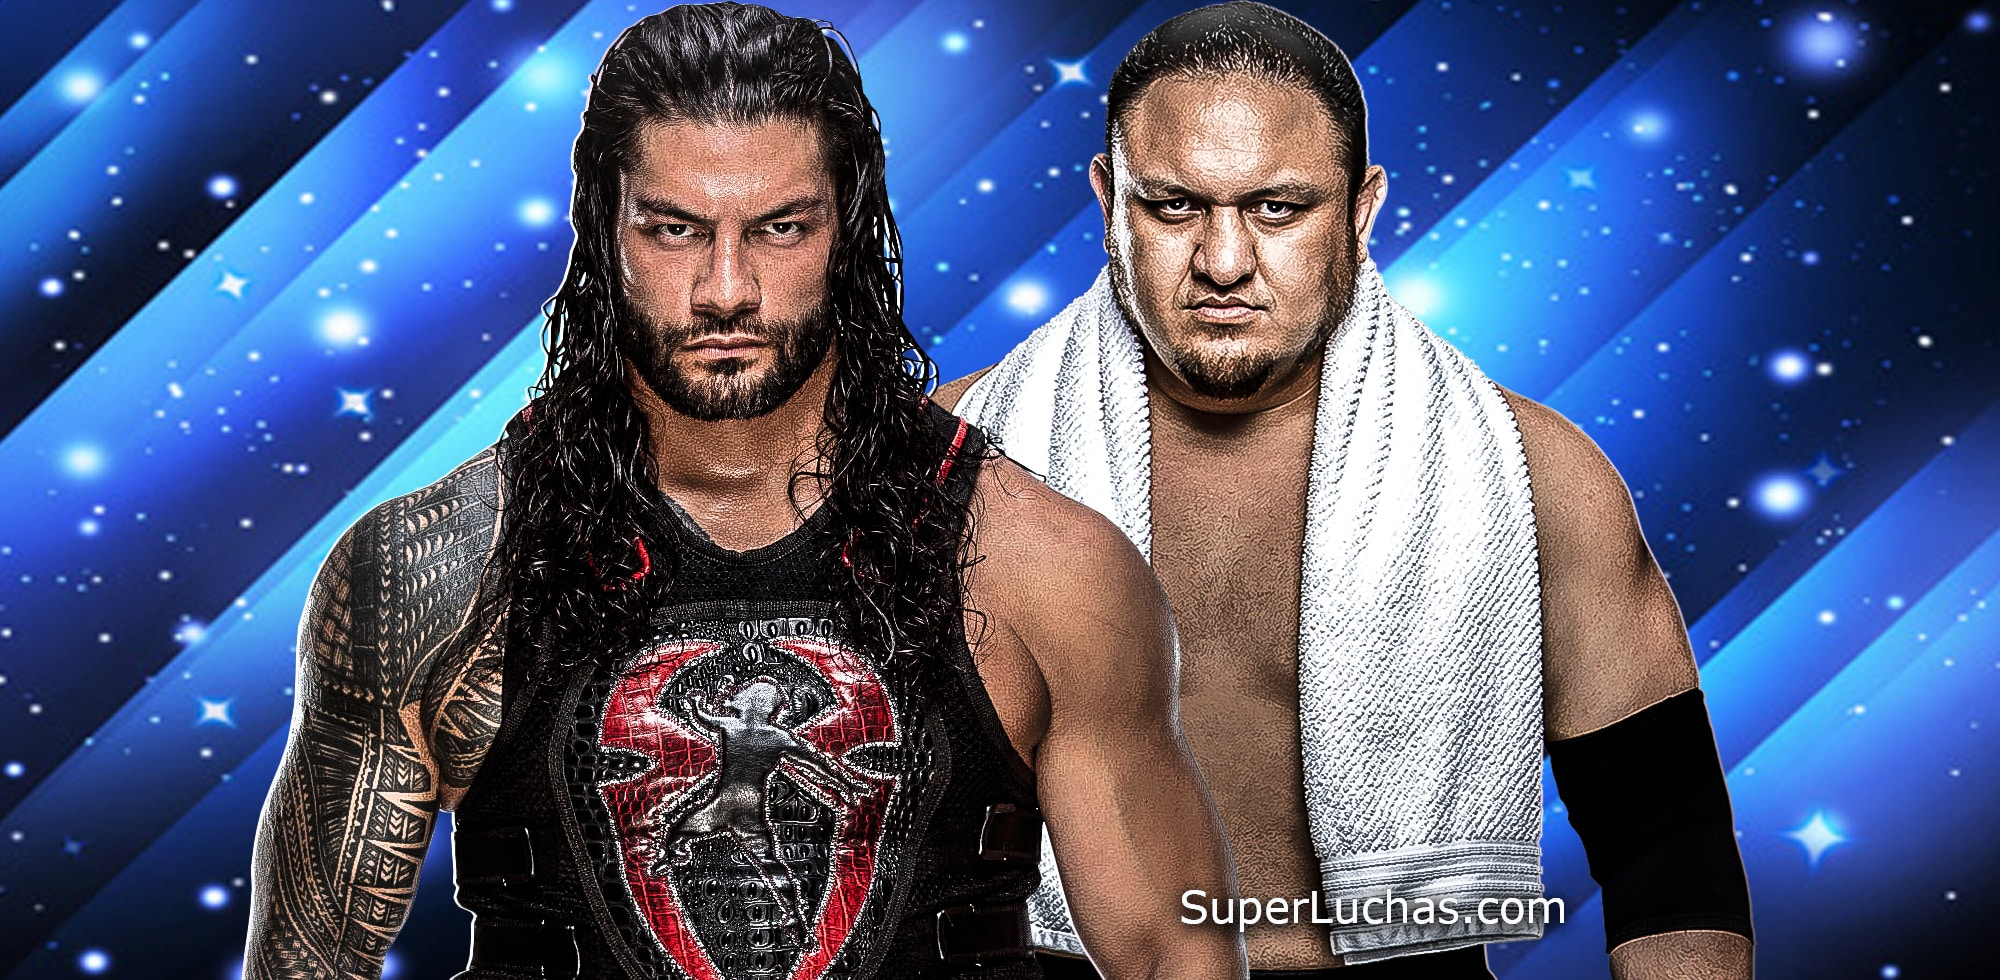 Roman Reigns / Samoa Joe / WWE© / SuperLuchas.com / SÚPER LUCHAS